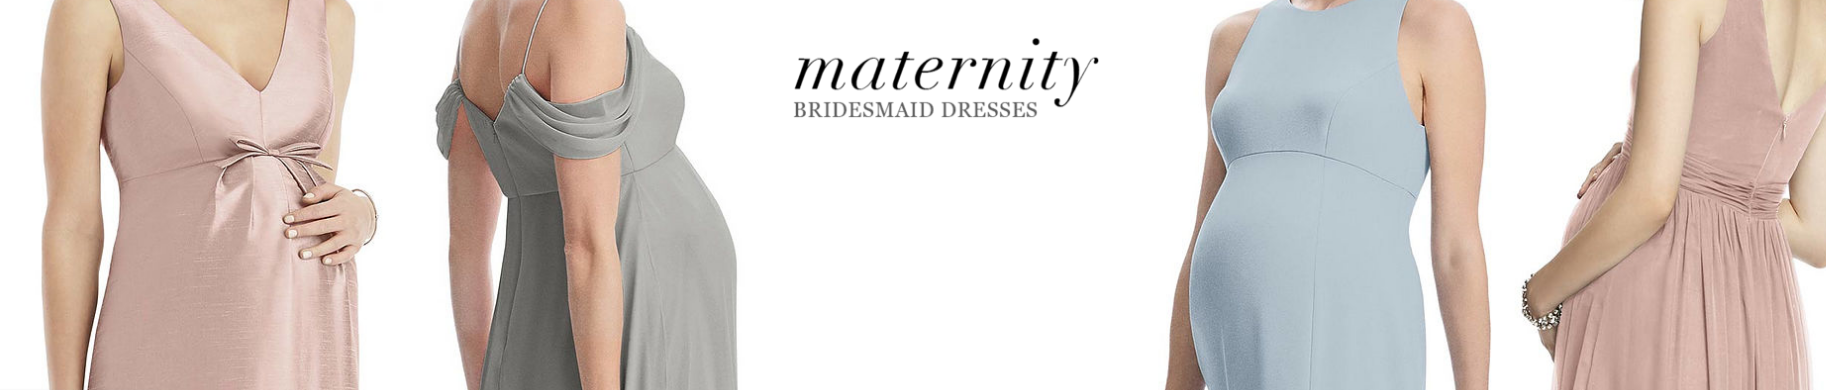 maternity-bridesmaids-bella-mera-bridal-2020.png